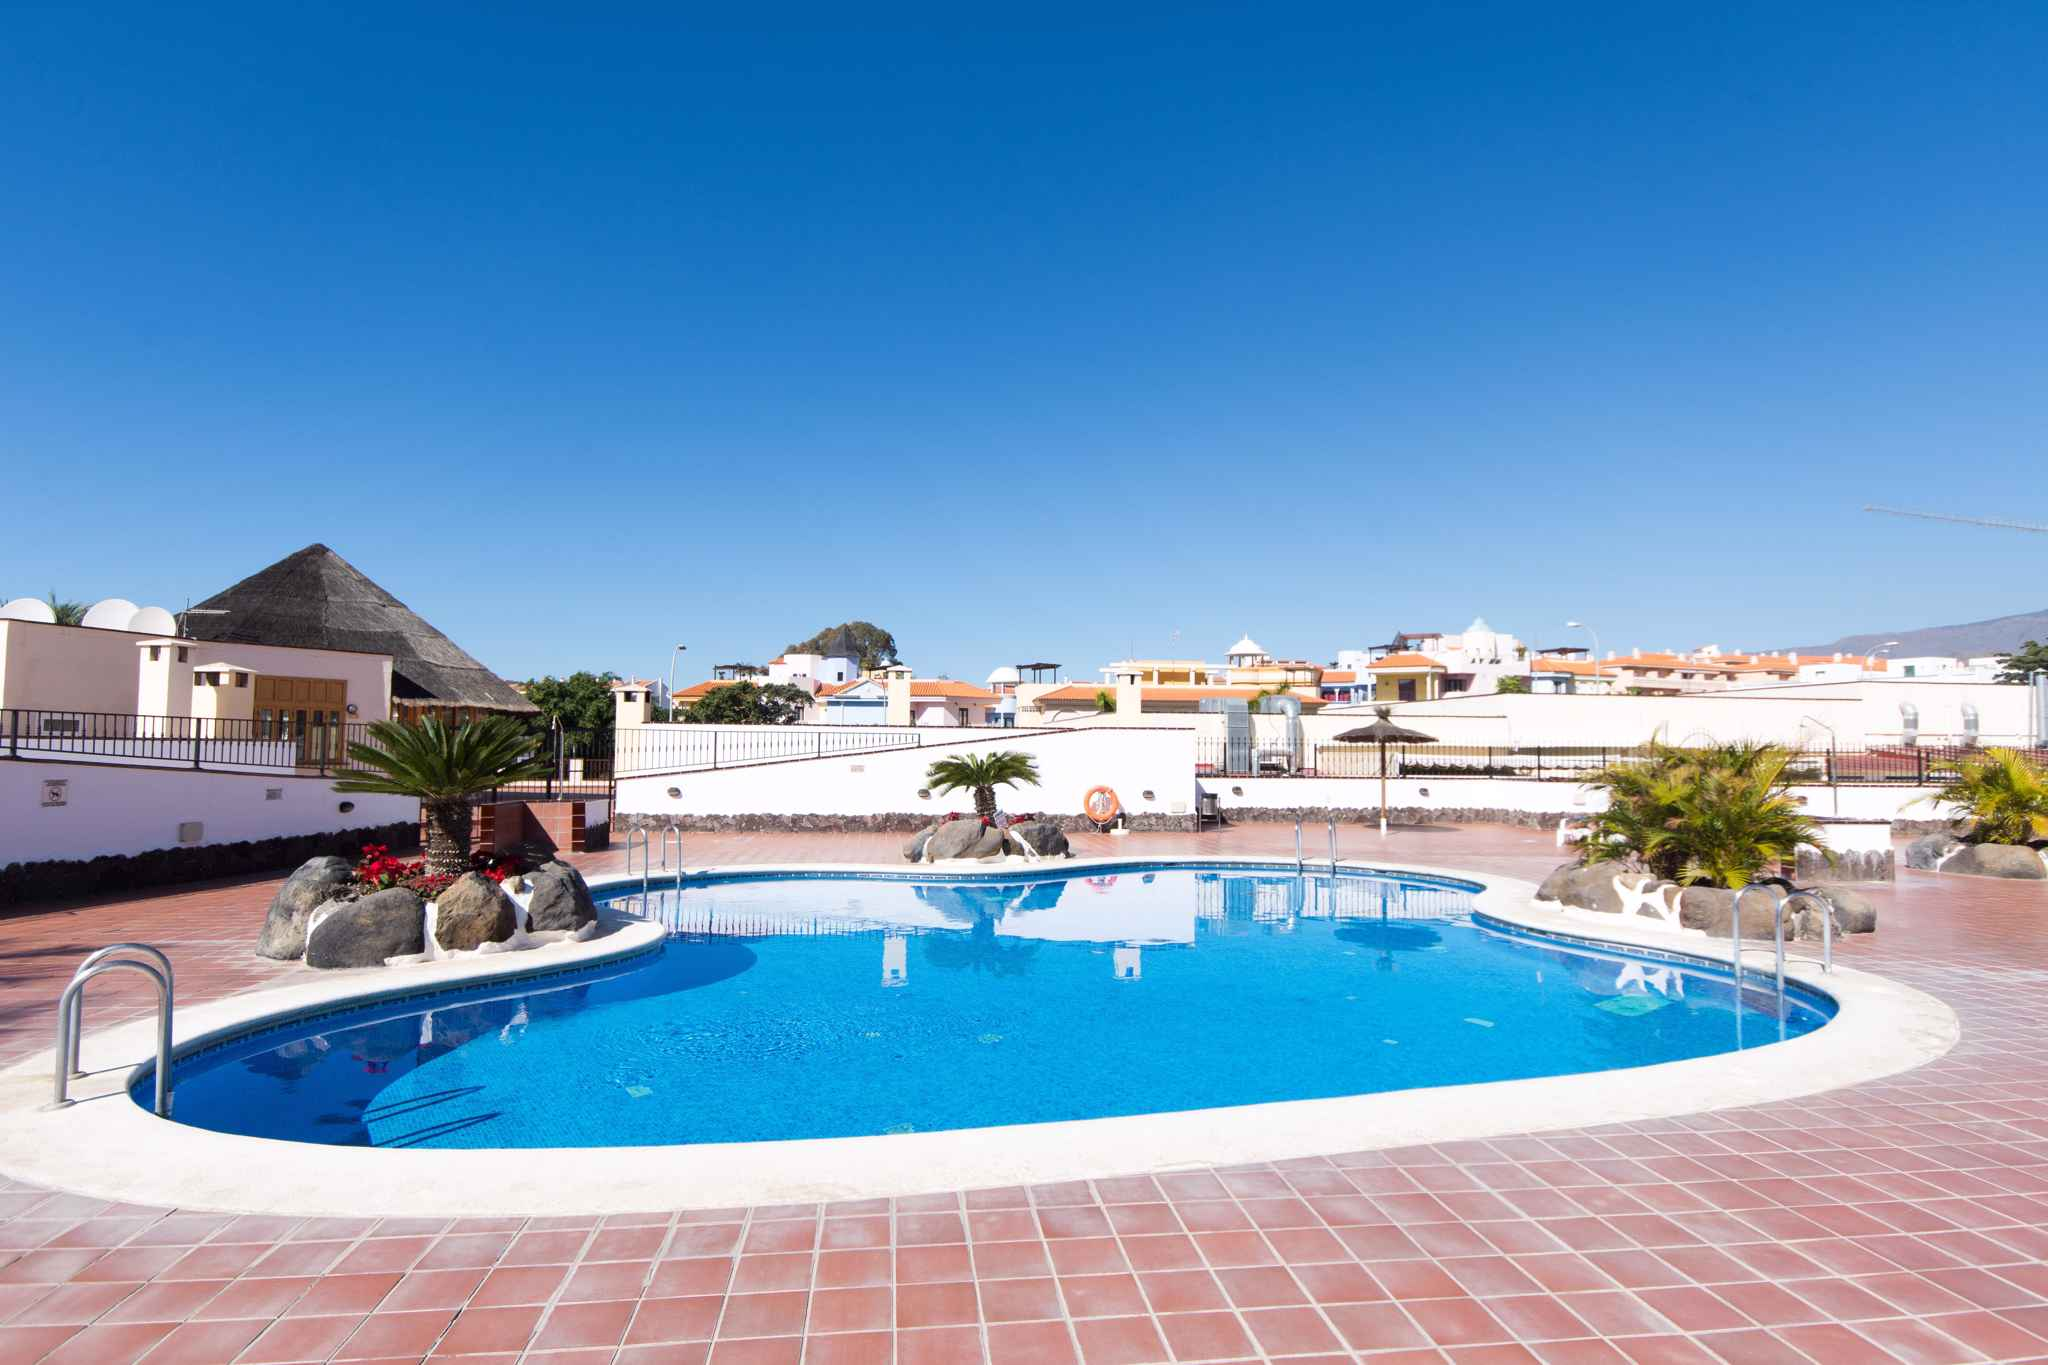 Holiday apartment mit Pool in Ferienanlage (2382979), Los Cristianos, Tenerife, Canary Islands, Spain, picture 8